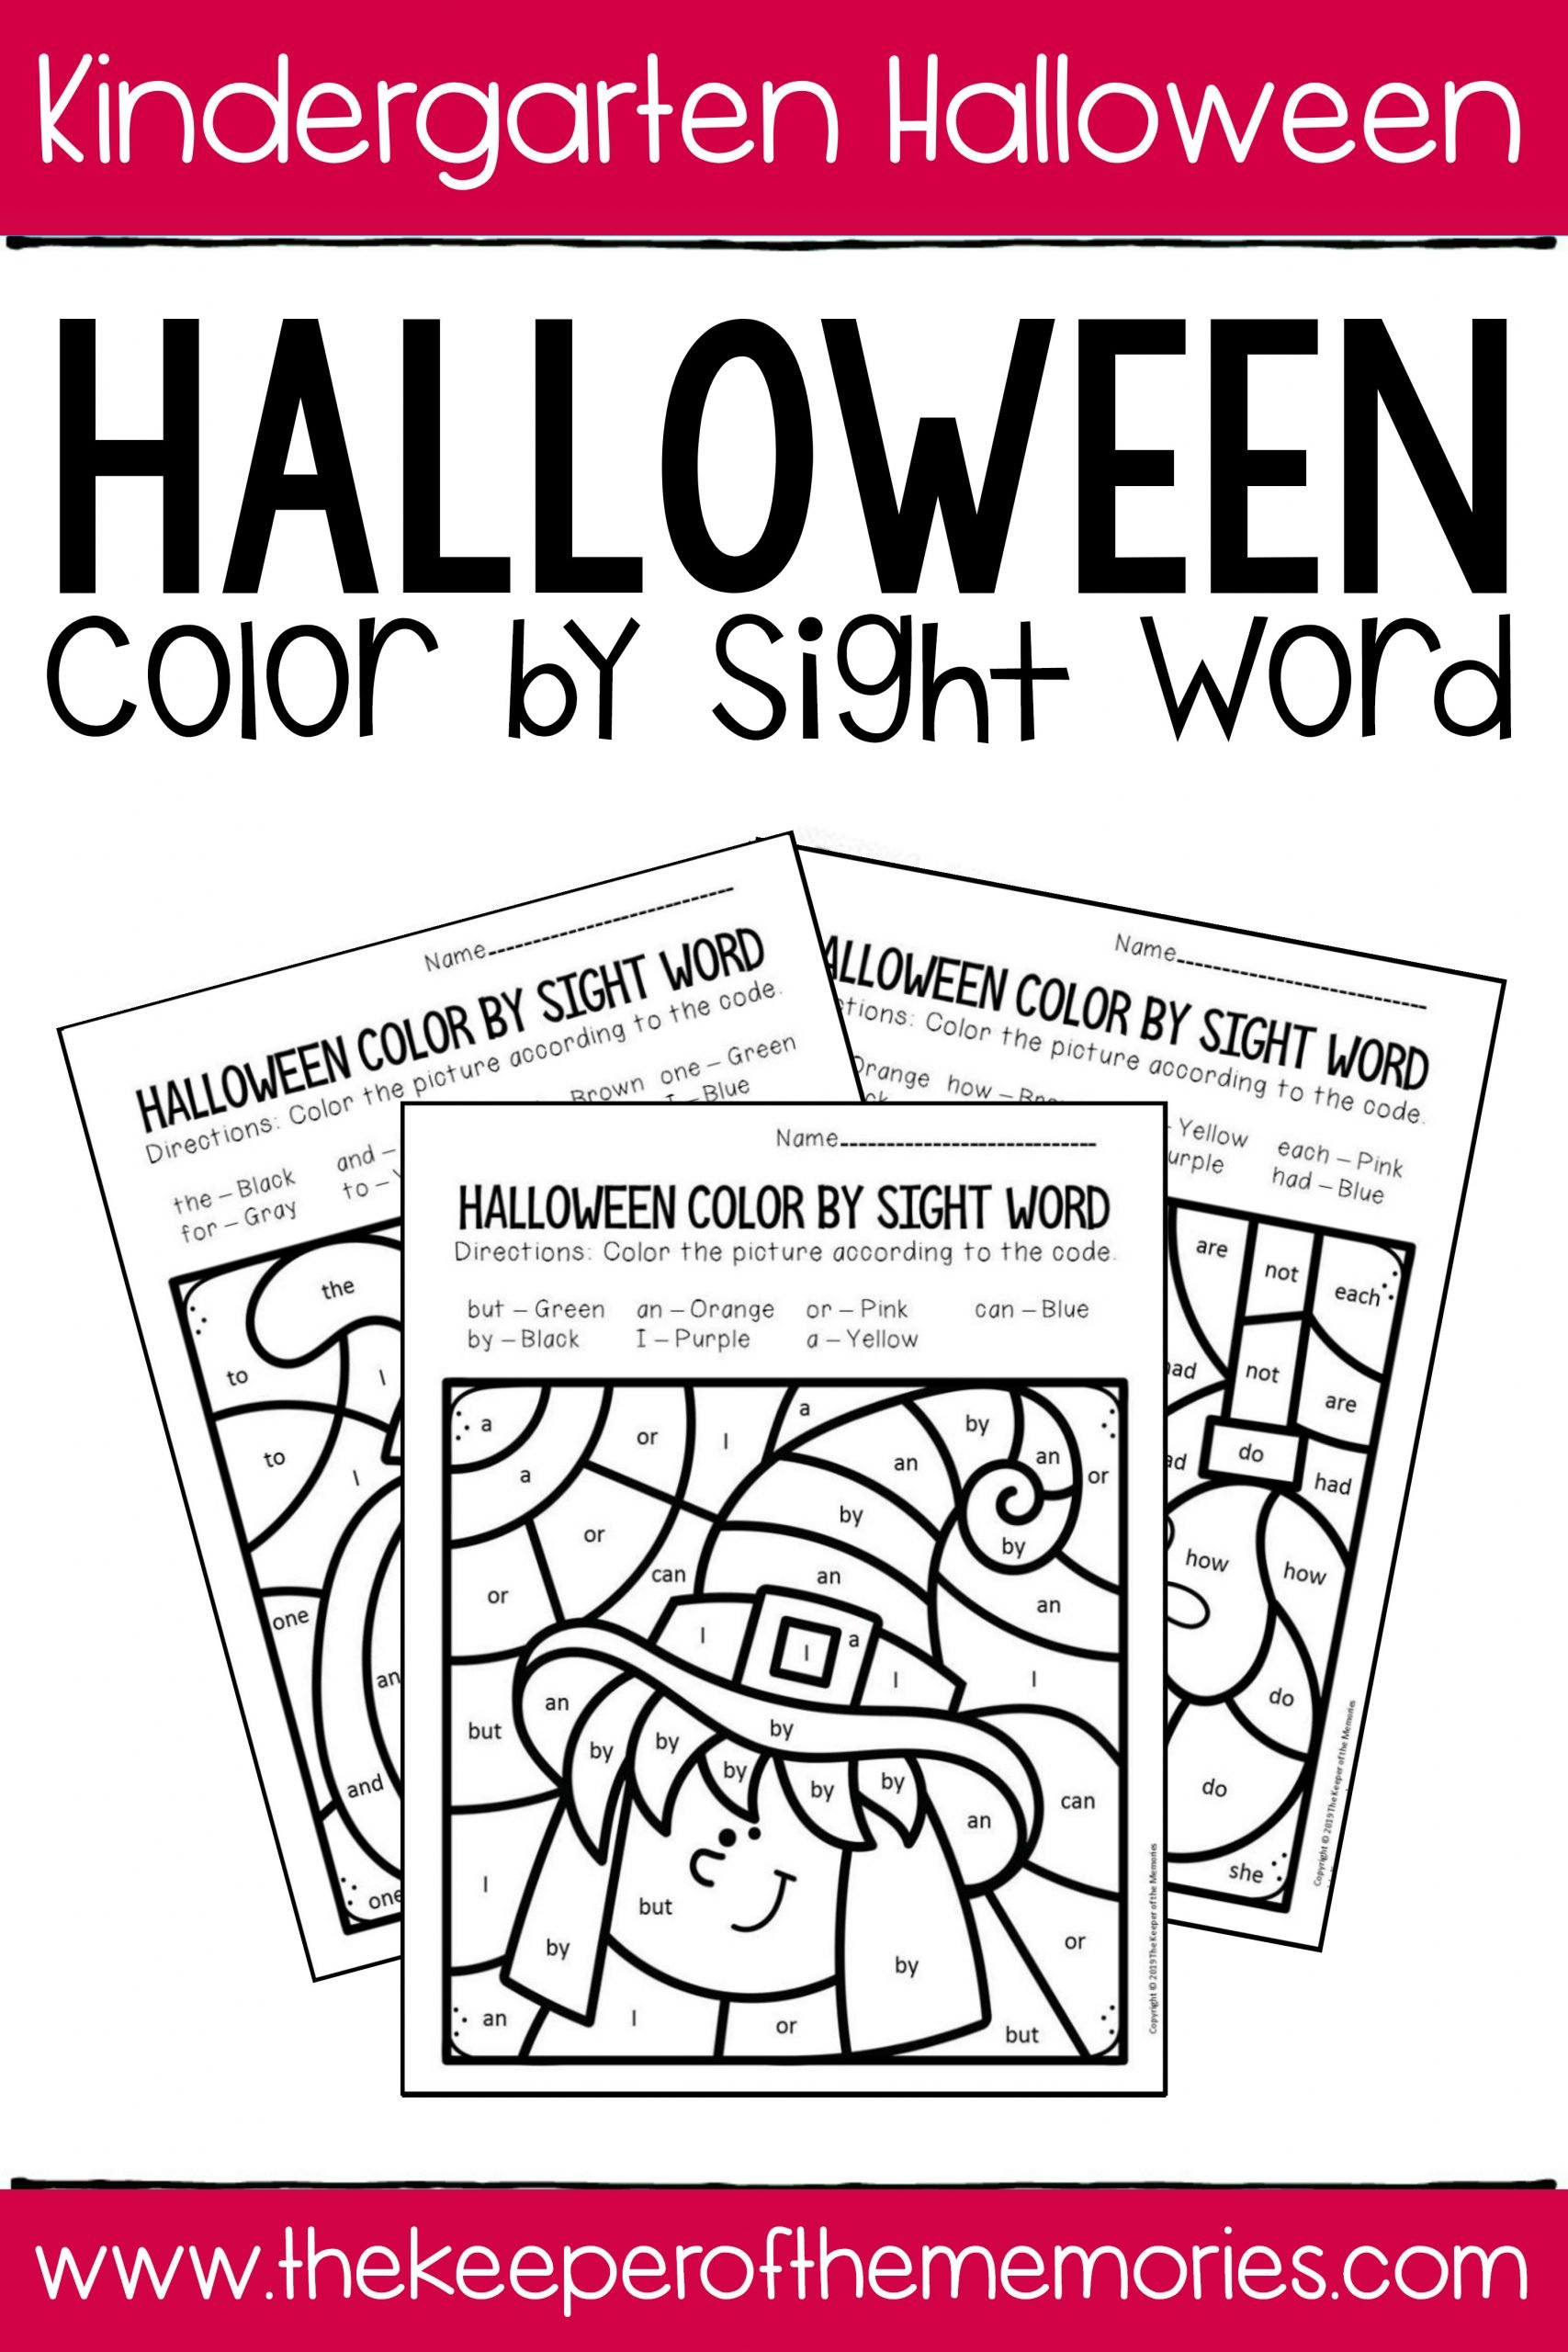 Color Word Worksheets Kindergarten Color by Sight Word Halloween Kindergarten Worksheets